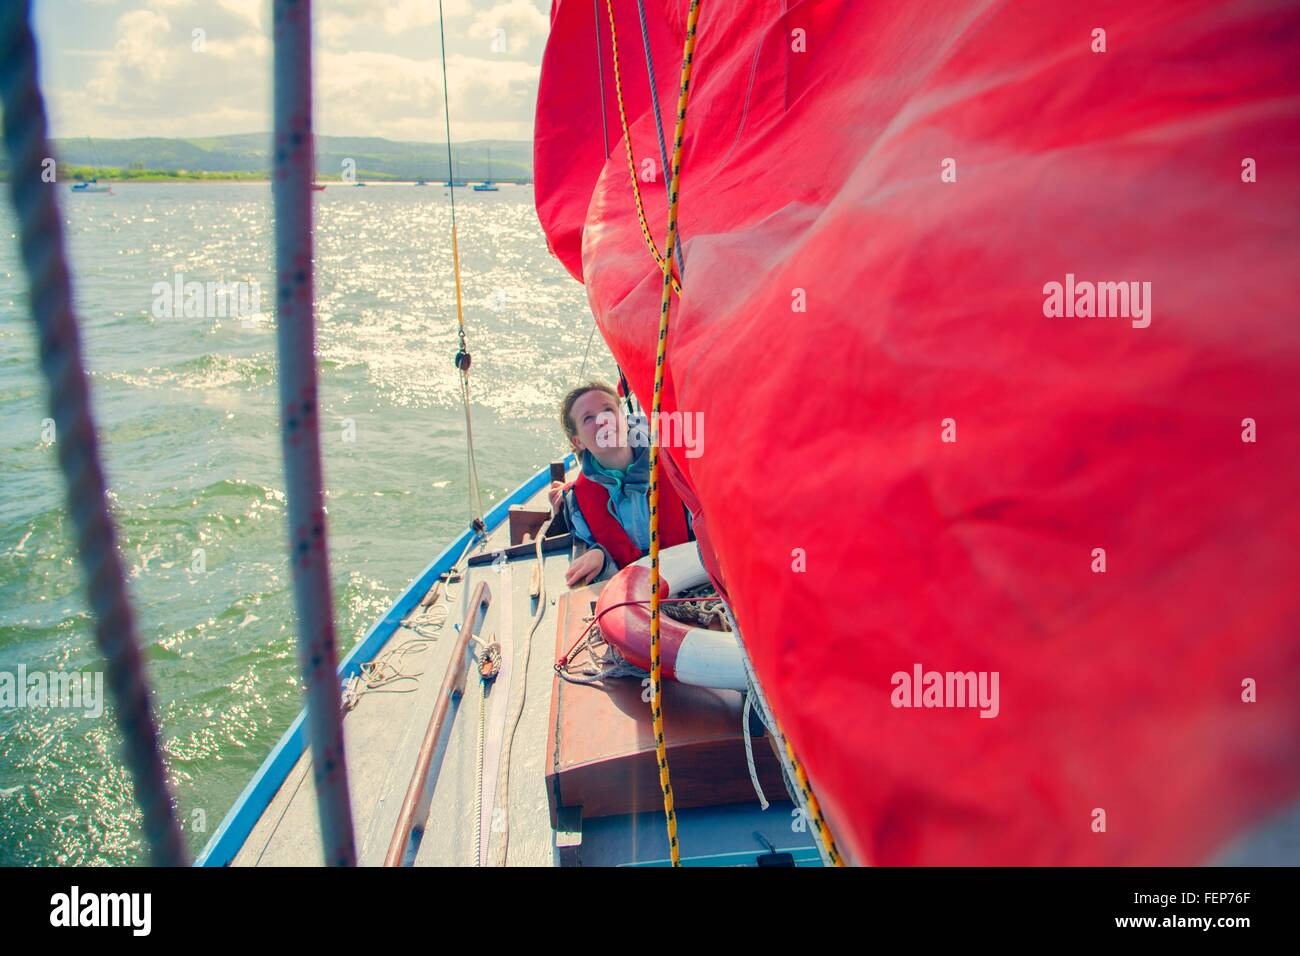 Mid adult woman on sailing boat - Stock Image